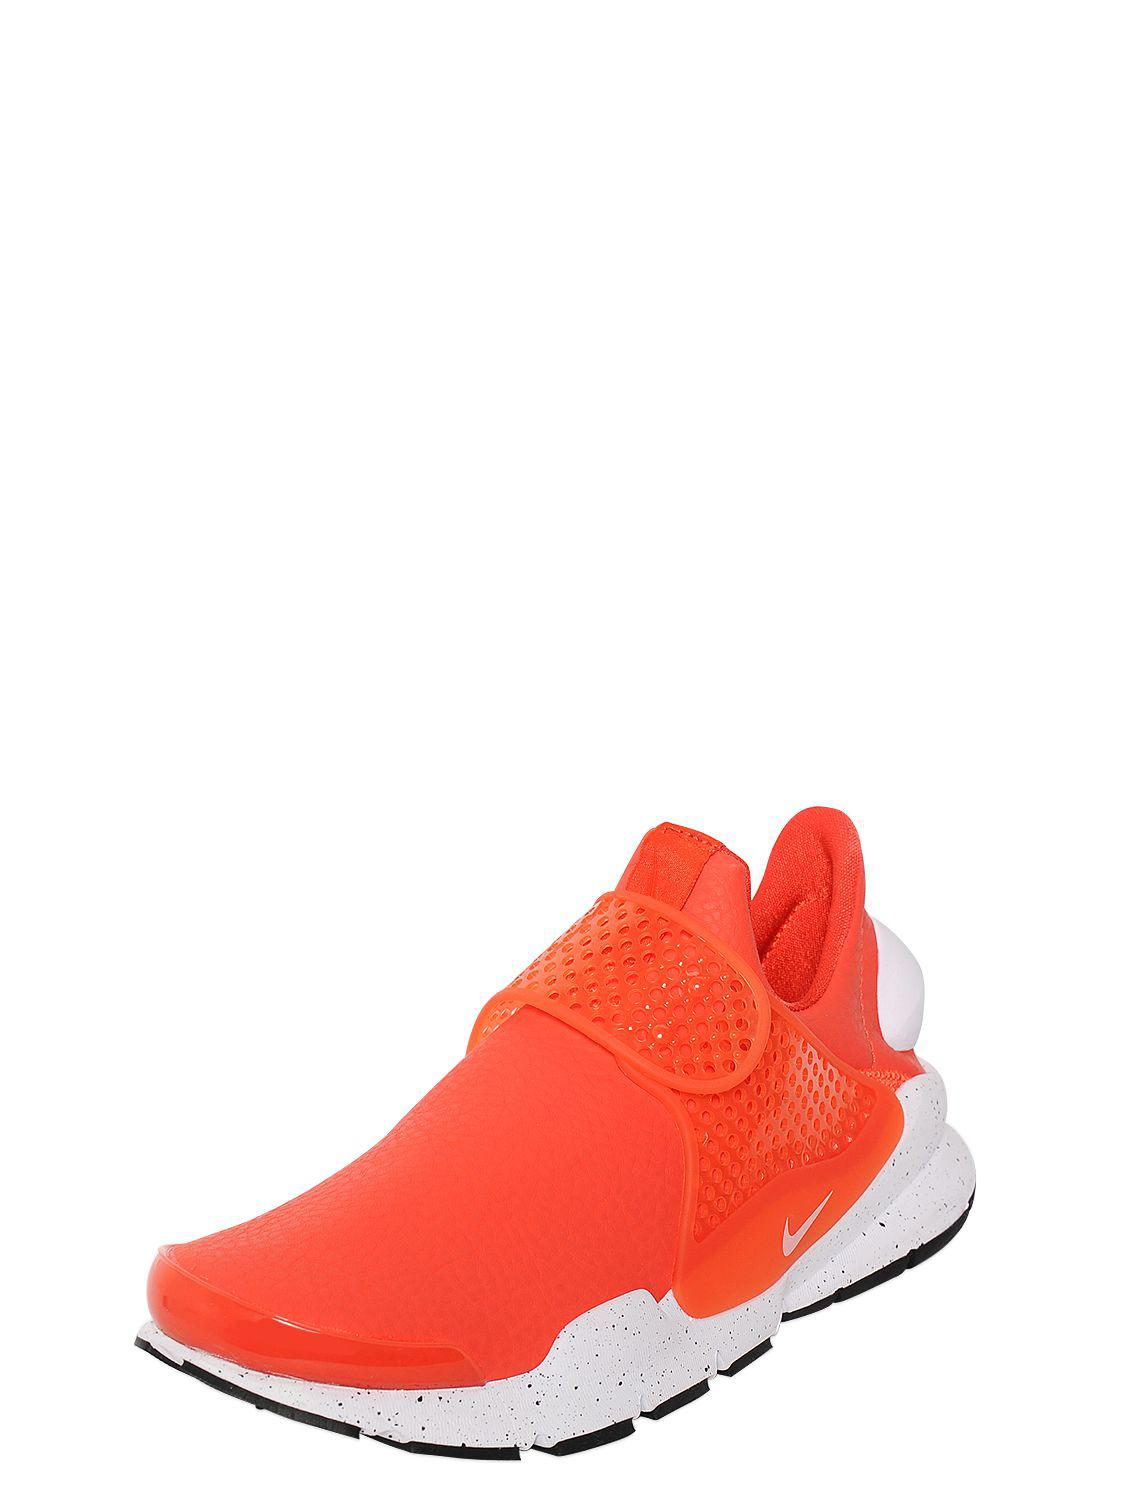 39e9dd193d1b Lyst - Nike Sock Dart Premium Sneakers in Red - Save 69%